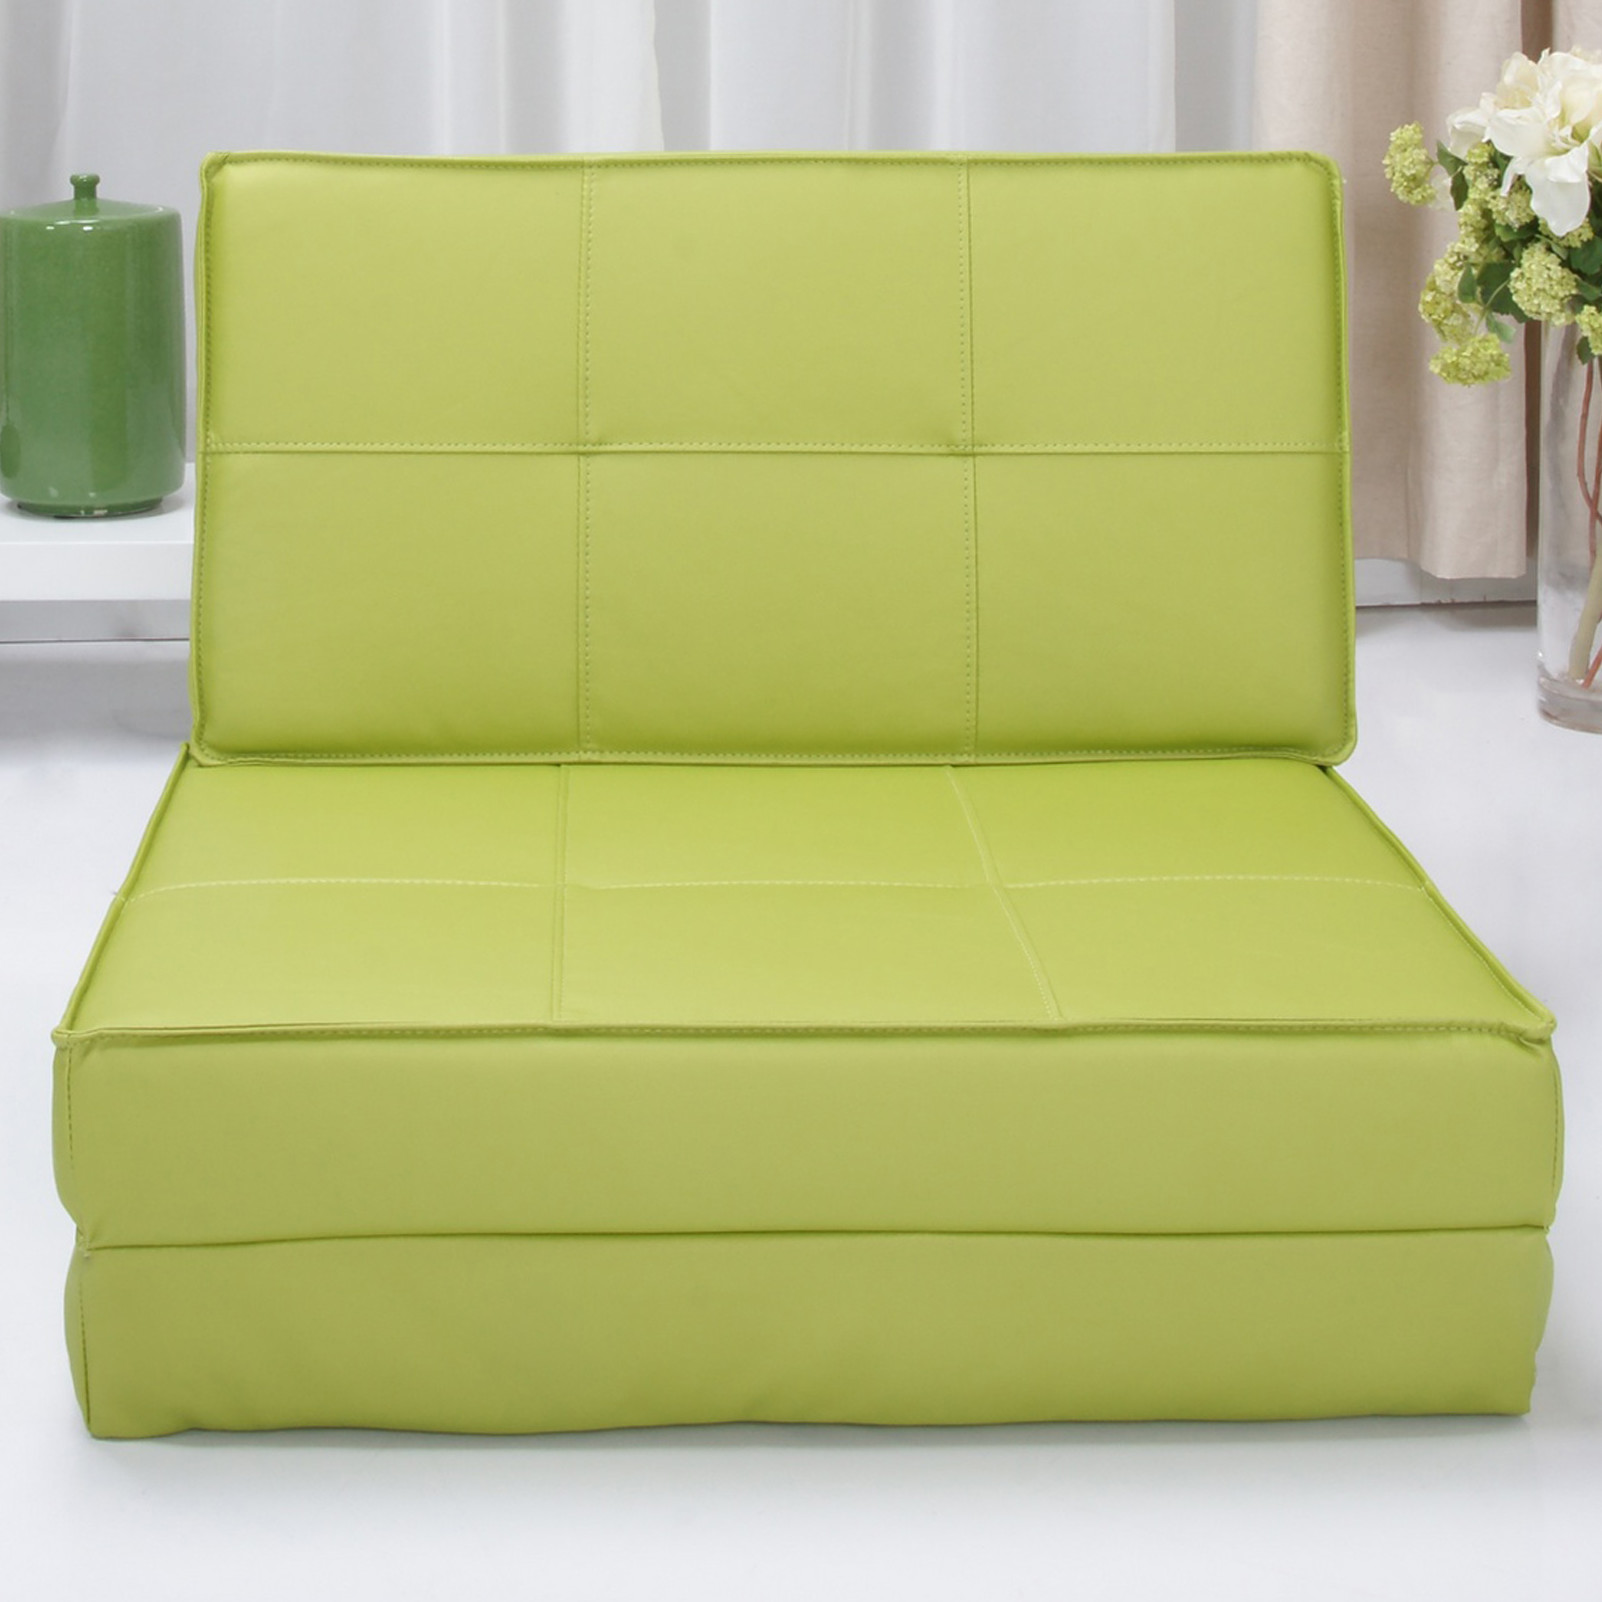 Image of: Convertible Chair Bed Target